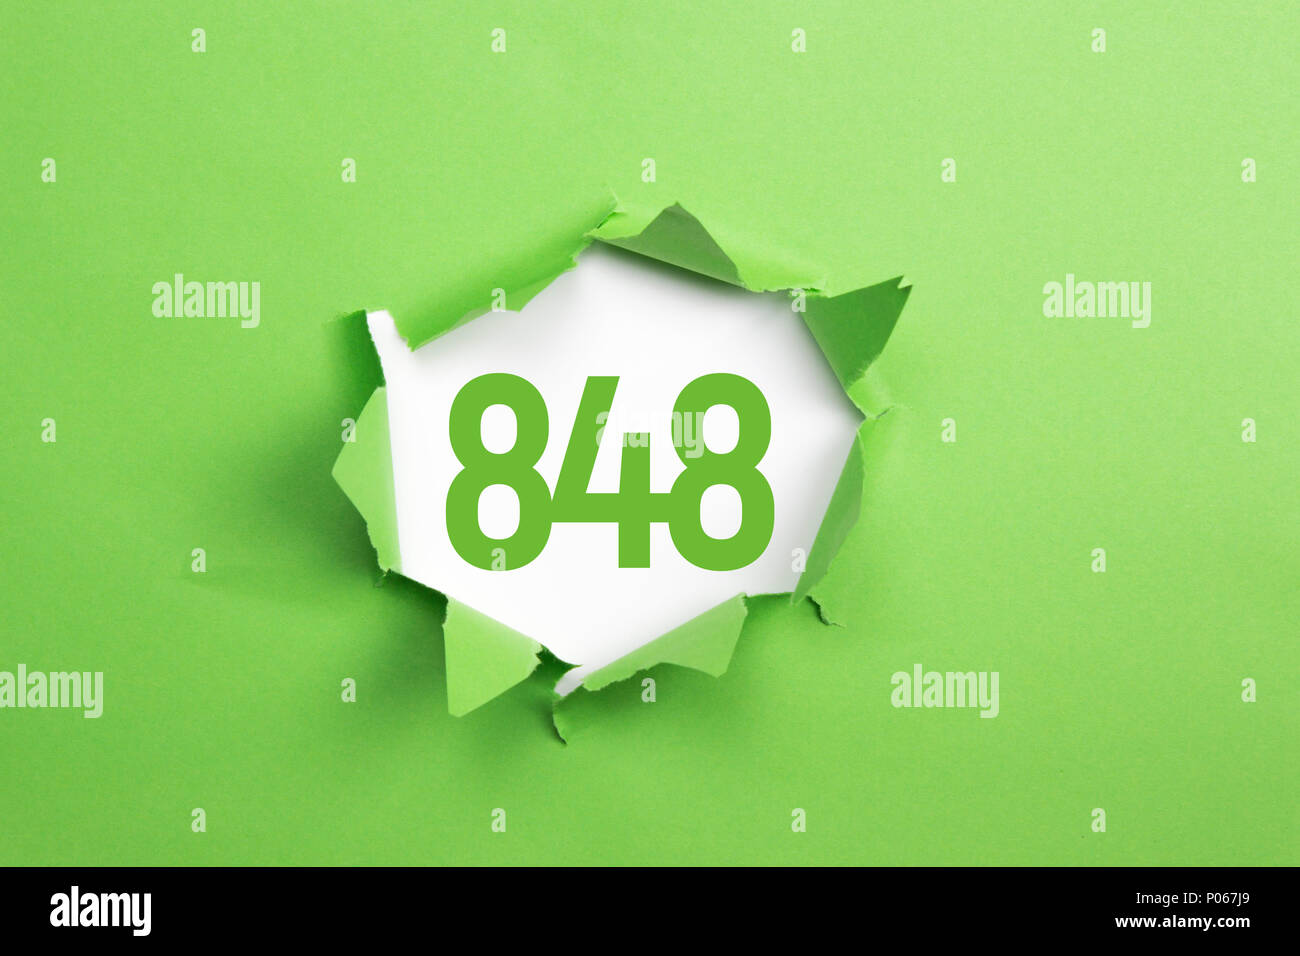 Green Number 848 on green paper background - Stock Image